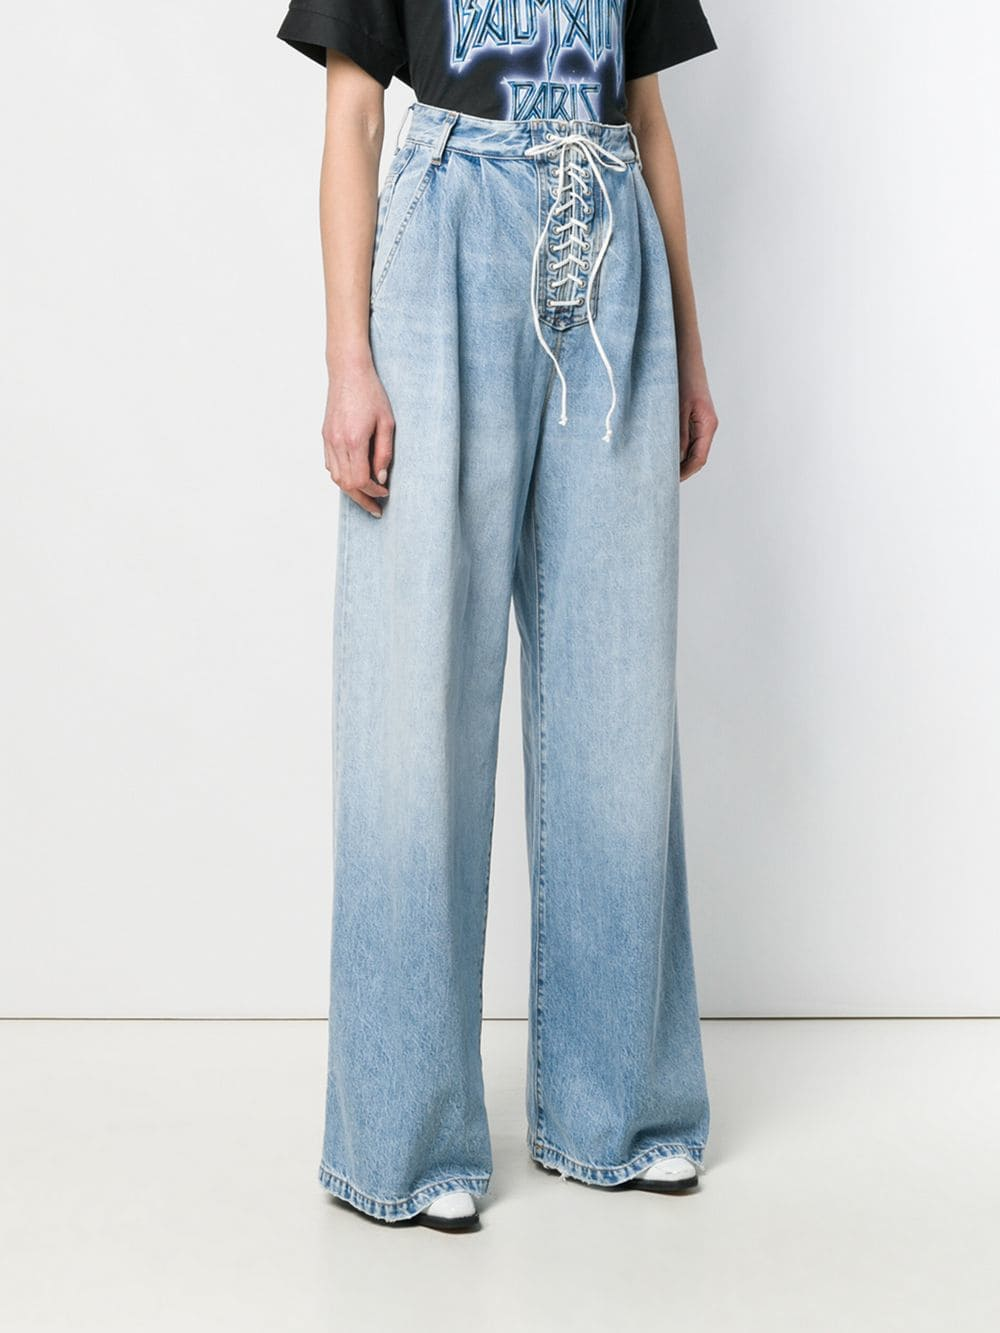 UNRAVEL PROJECT WOMEN STONE 10 LACE UP WIDE LEG DENIM